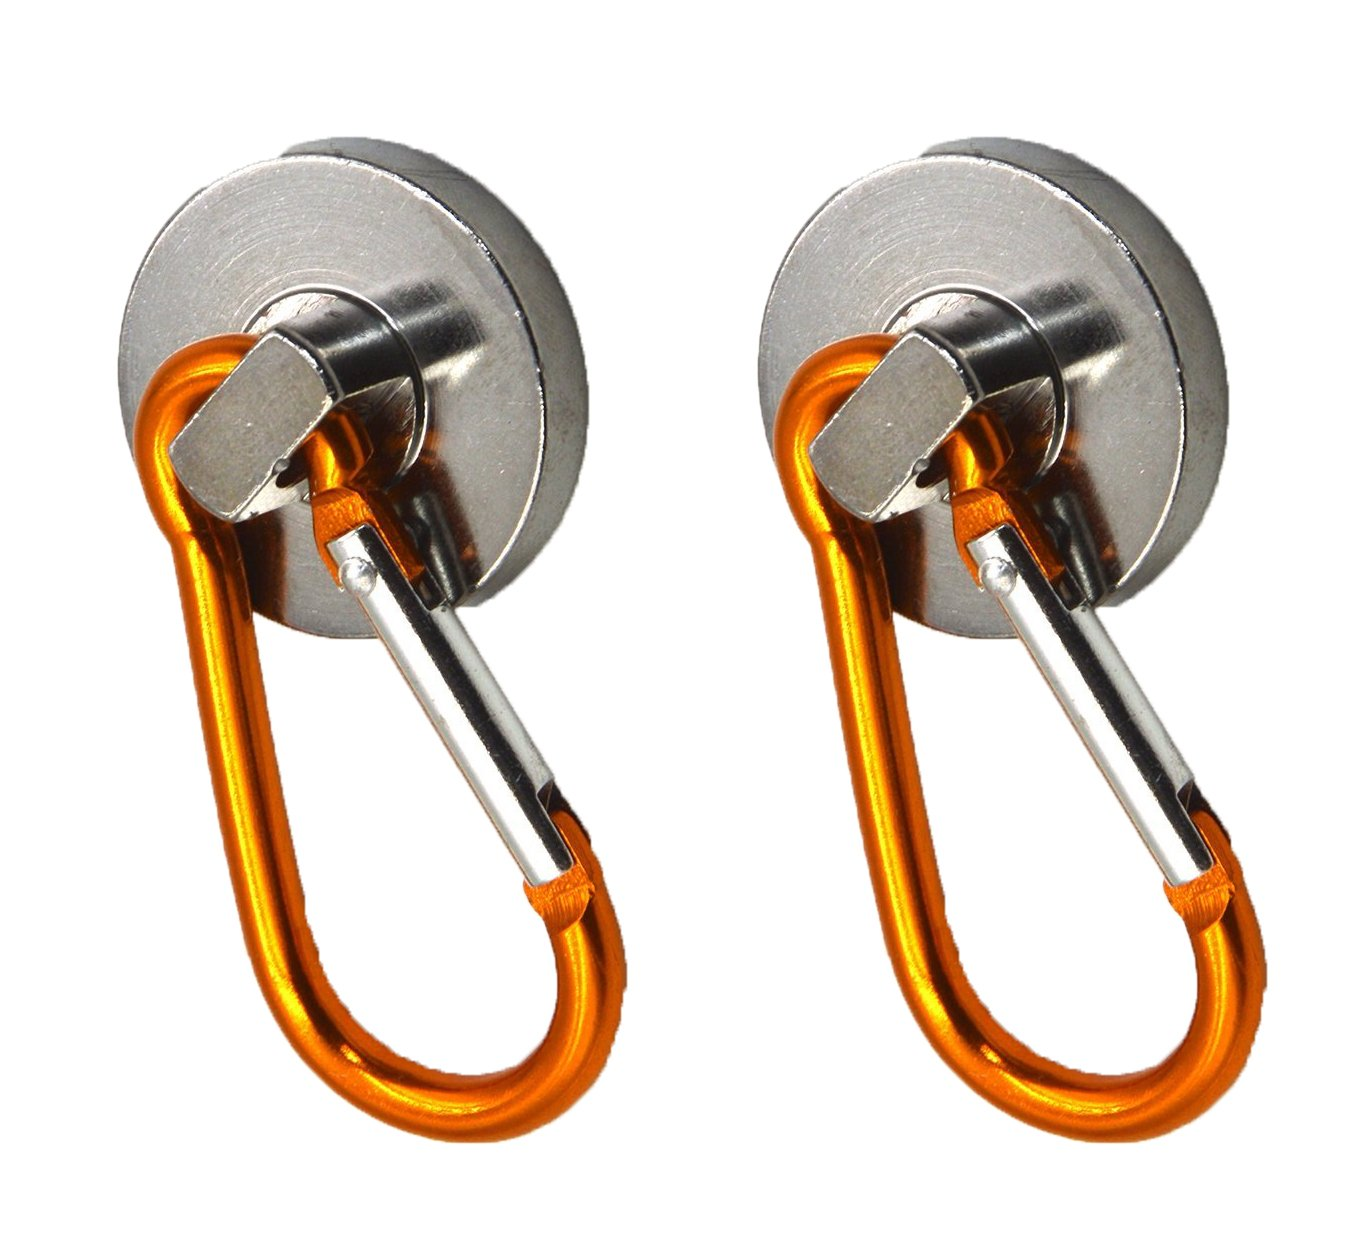 10L0L (2) SUPER-Strong Neodymium Magnet Holds 35 Lbs! Carabiner Snap Hook & Split Ring by 10L0L